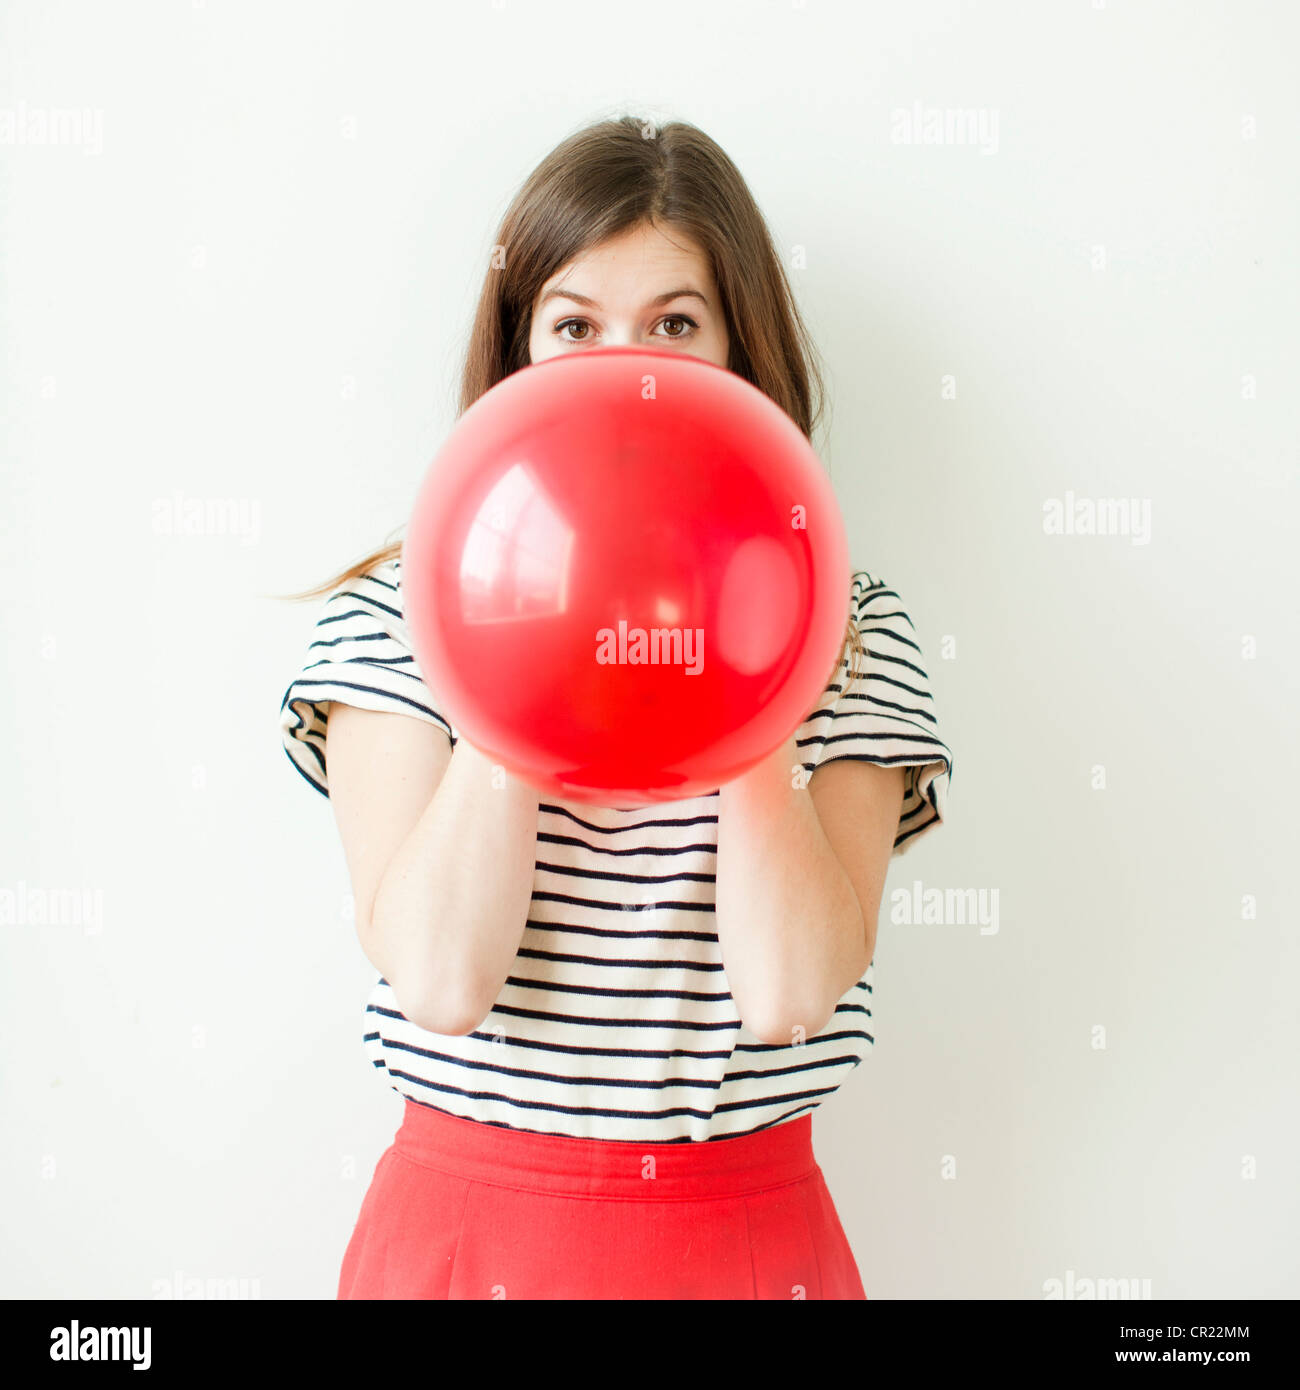 Studio shot of young woman blowing balloon - Stock Image